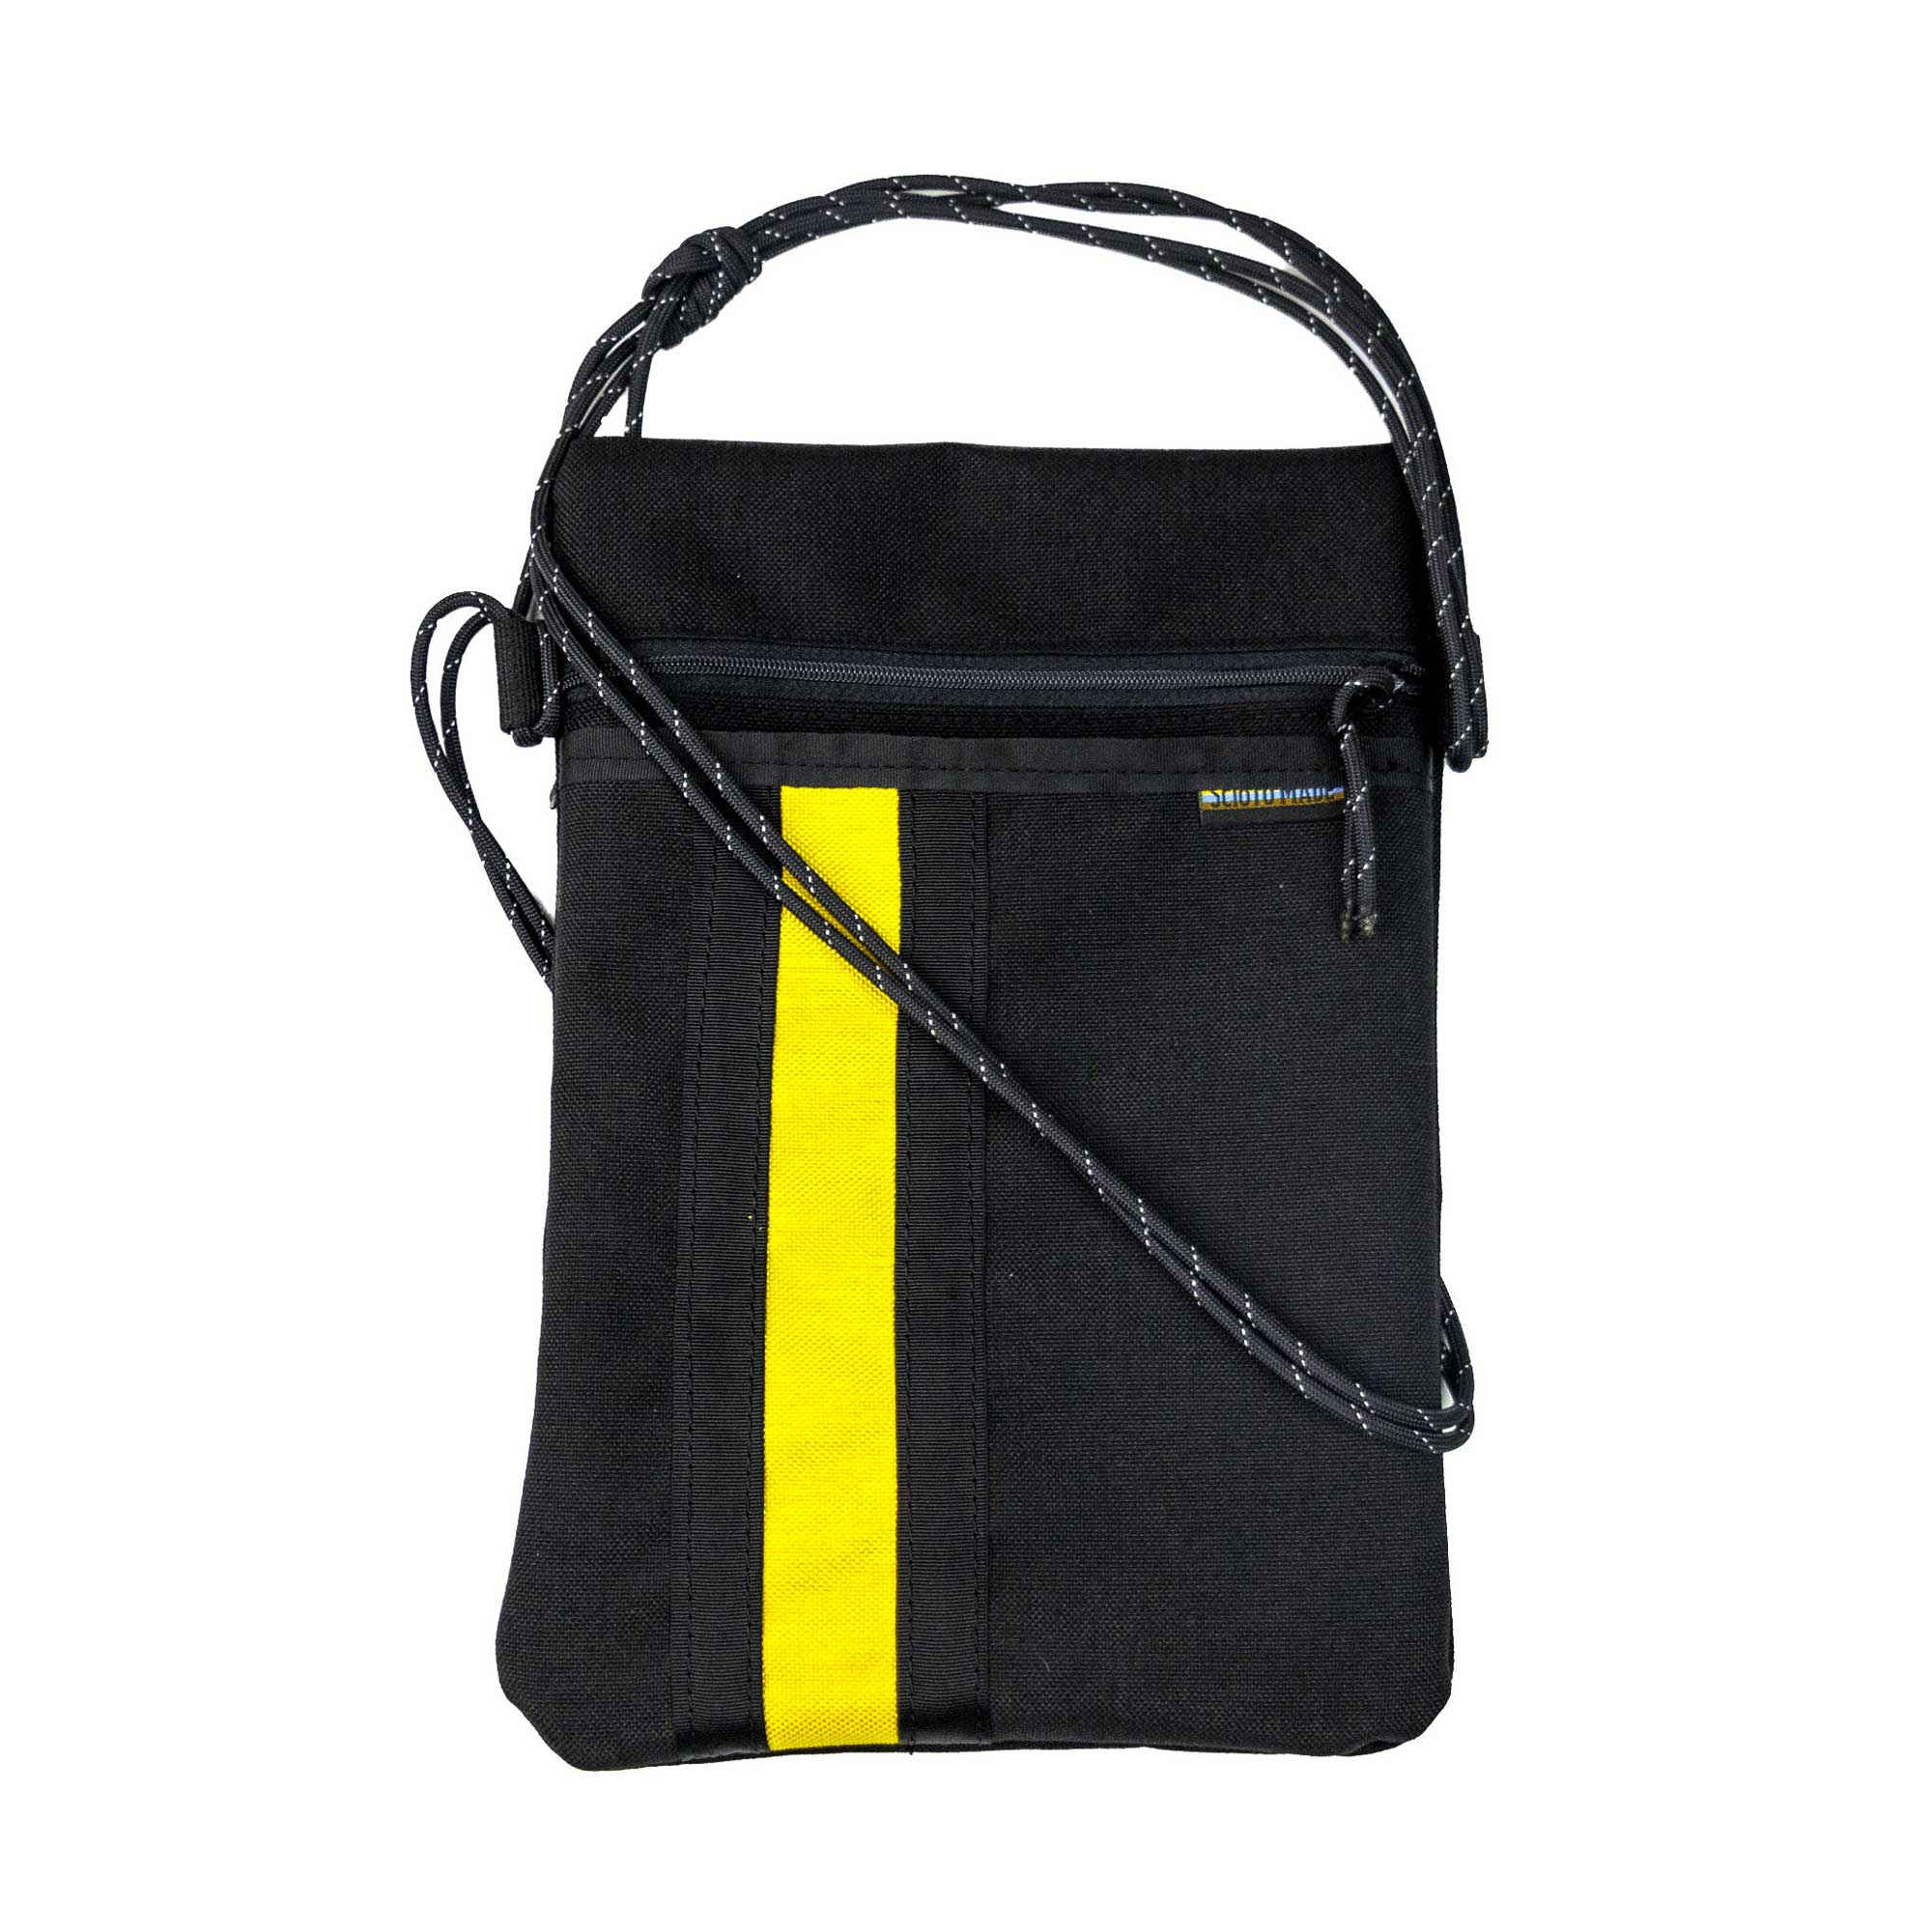 Scioto Made crossbody bag xover black yellow stripe front view 01